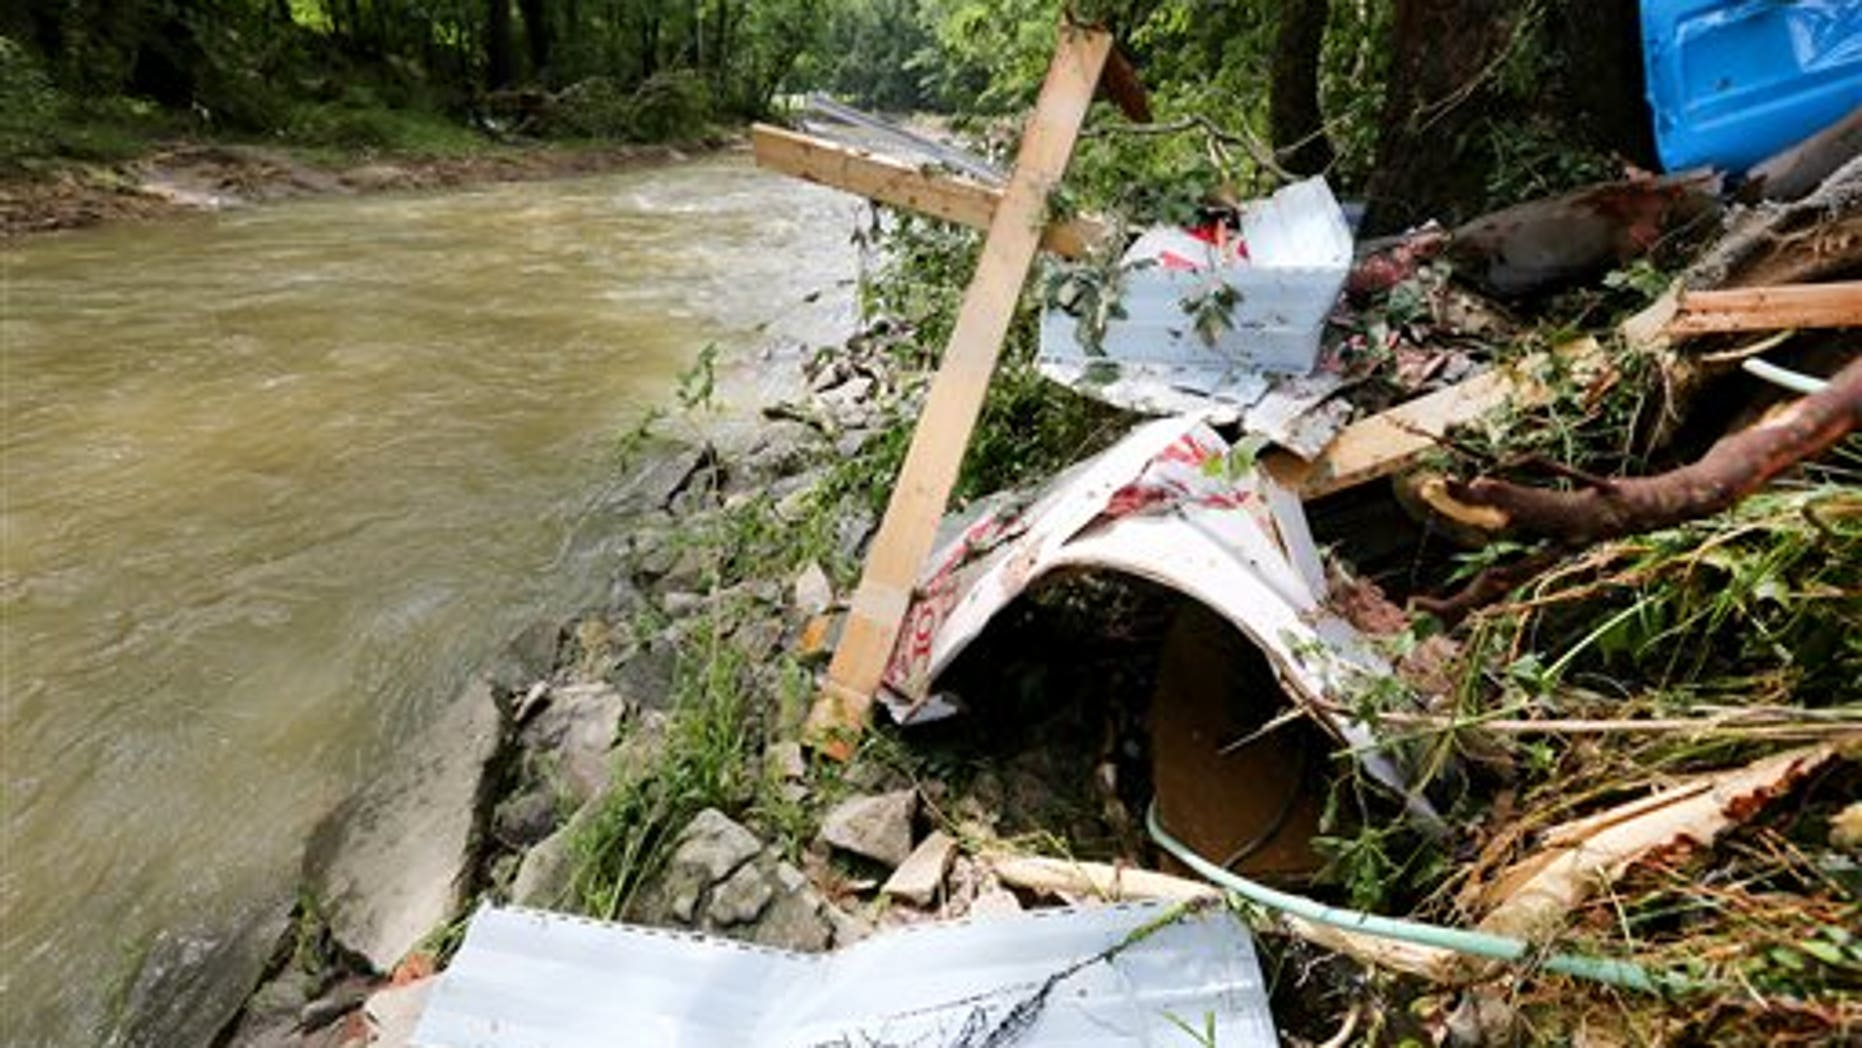 Debris rests on the bank of Red Oak Creek where a mobile home was swept off in Ripley, Ohio, Sunday, July 19, 2015.